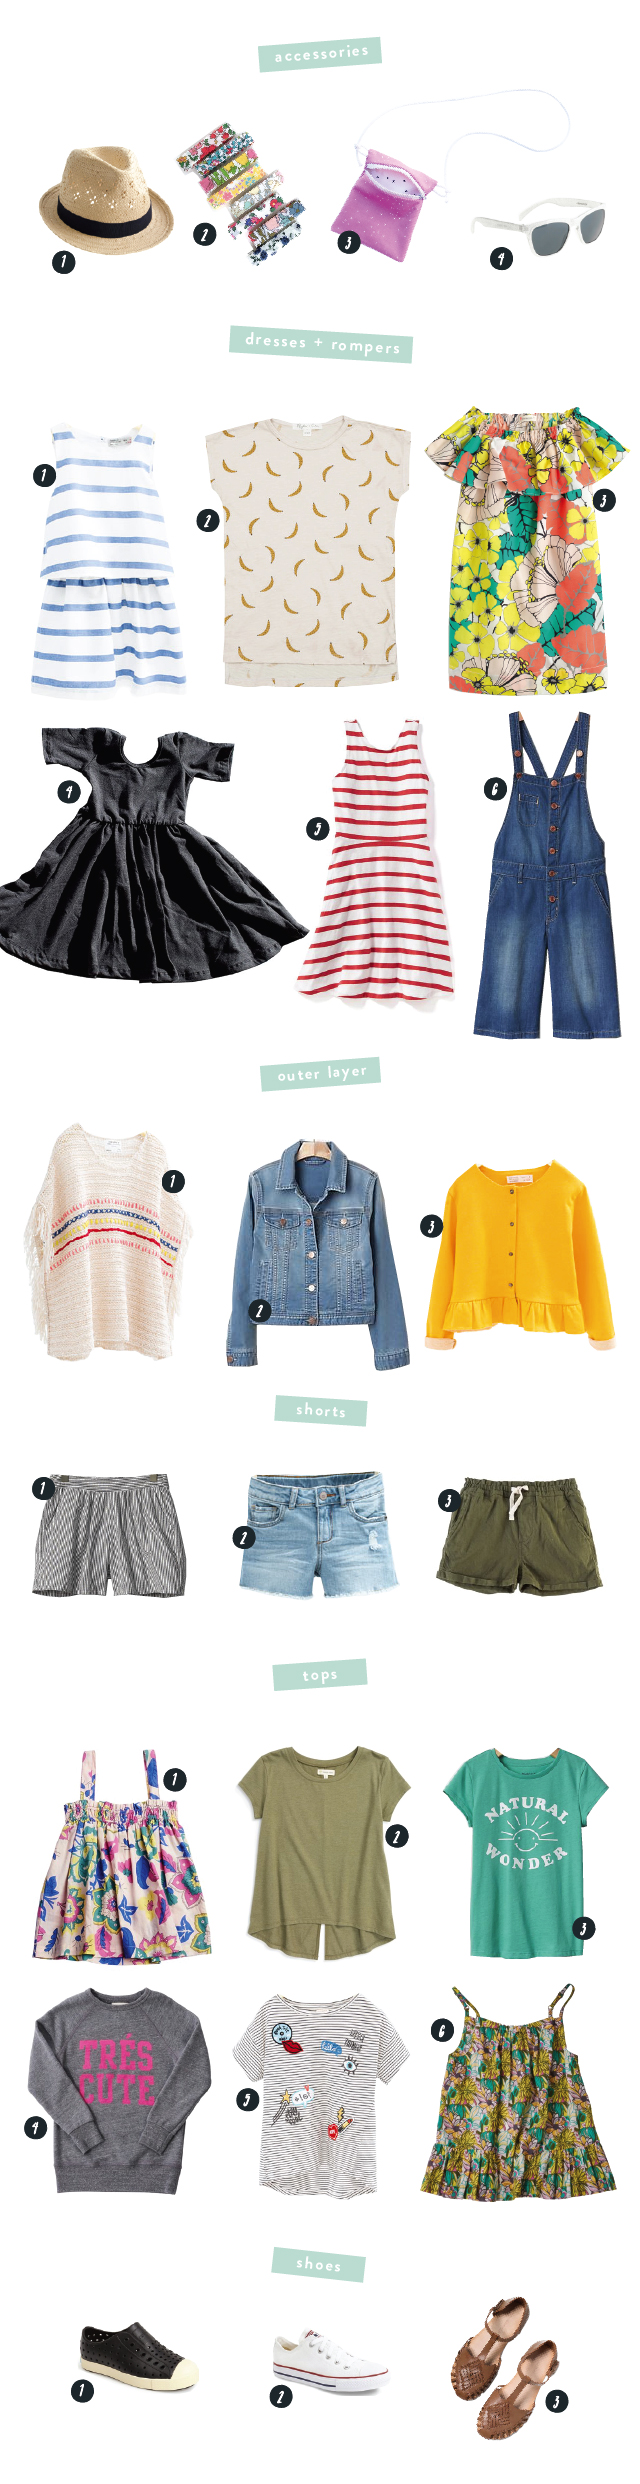 warm-weather-girl's-wardrobe